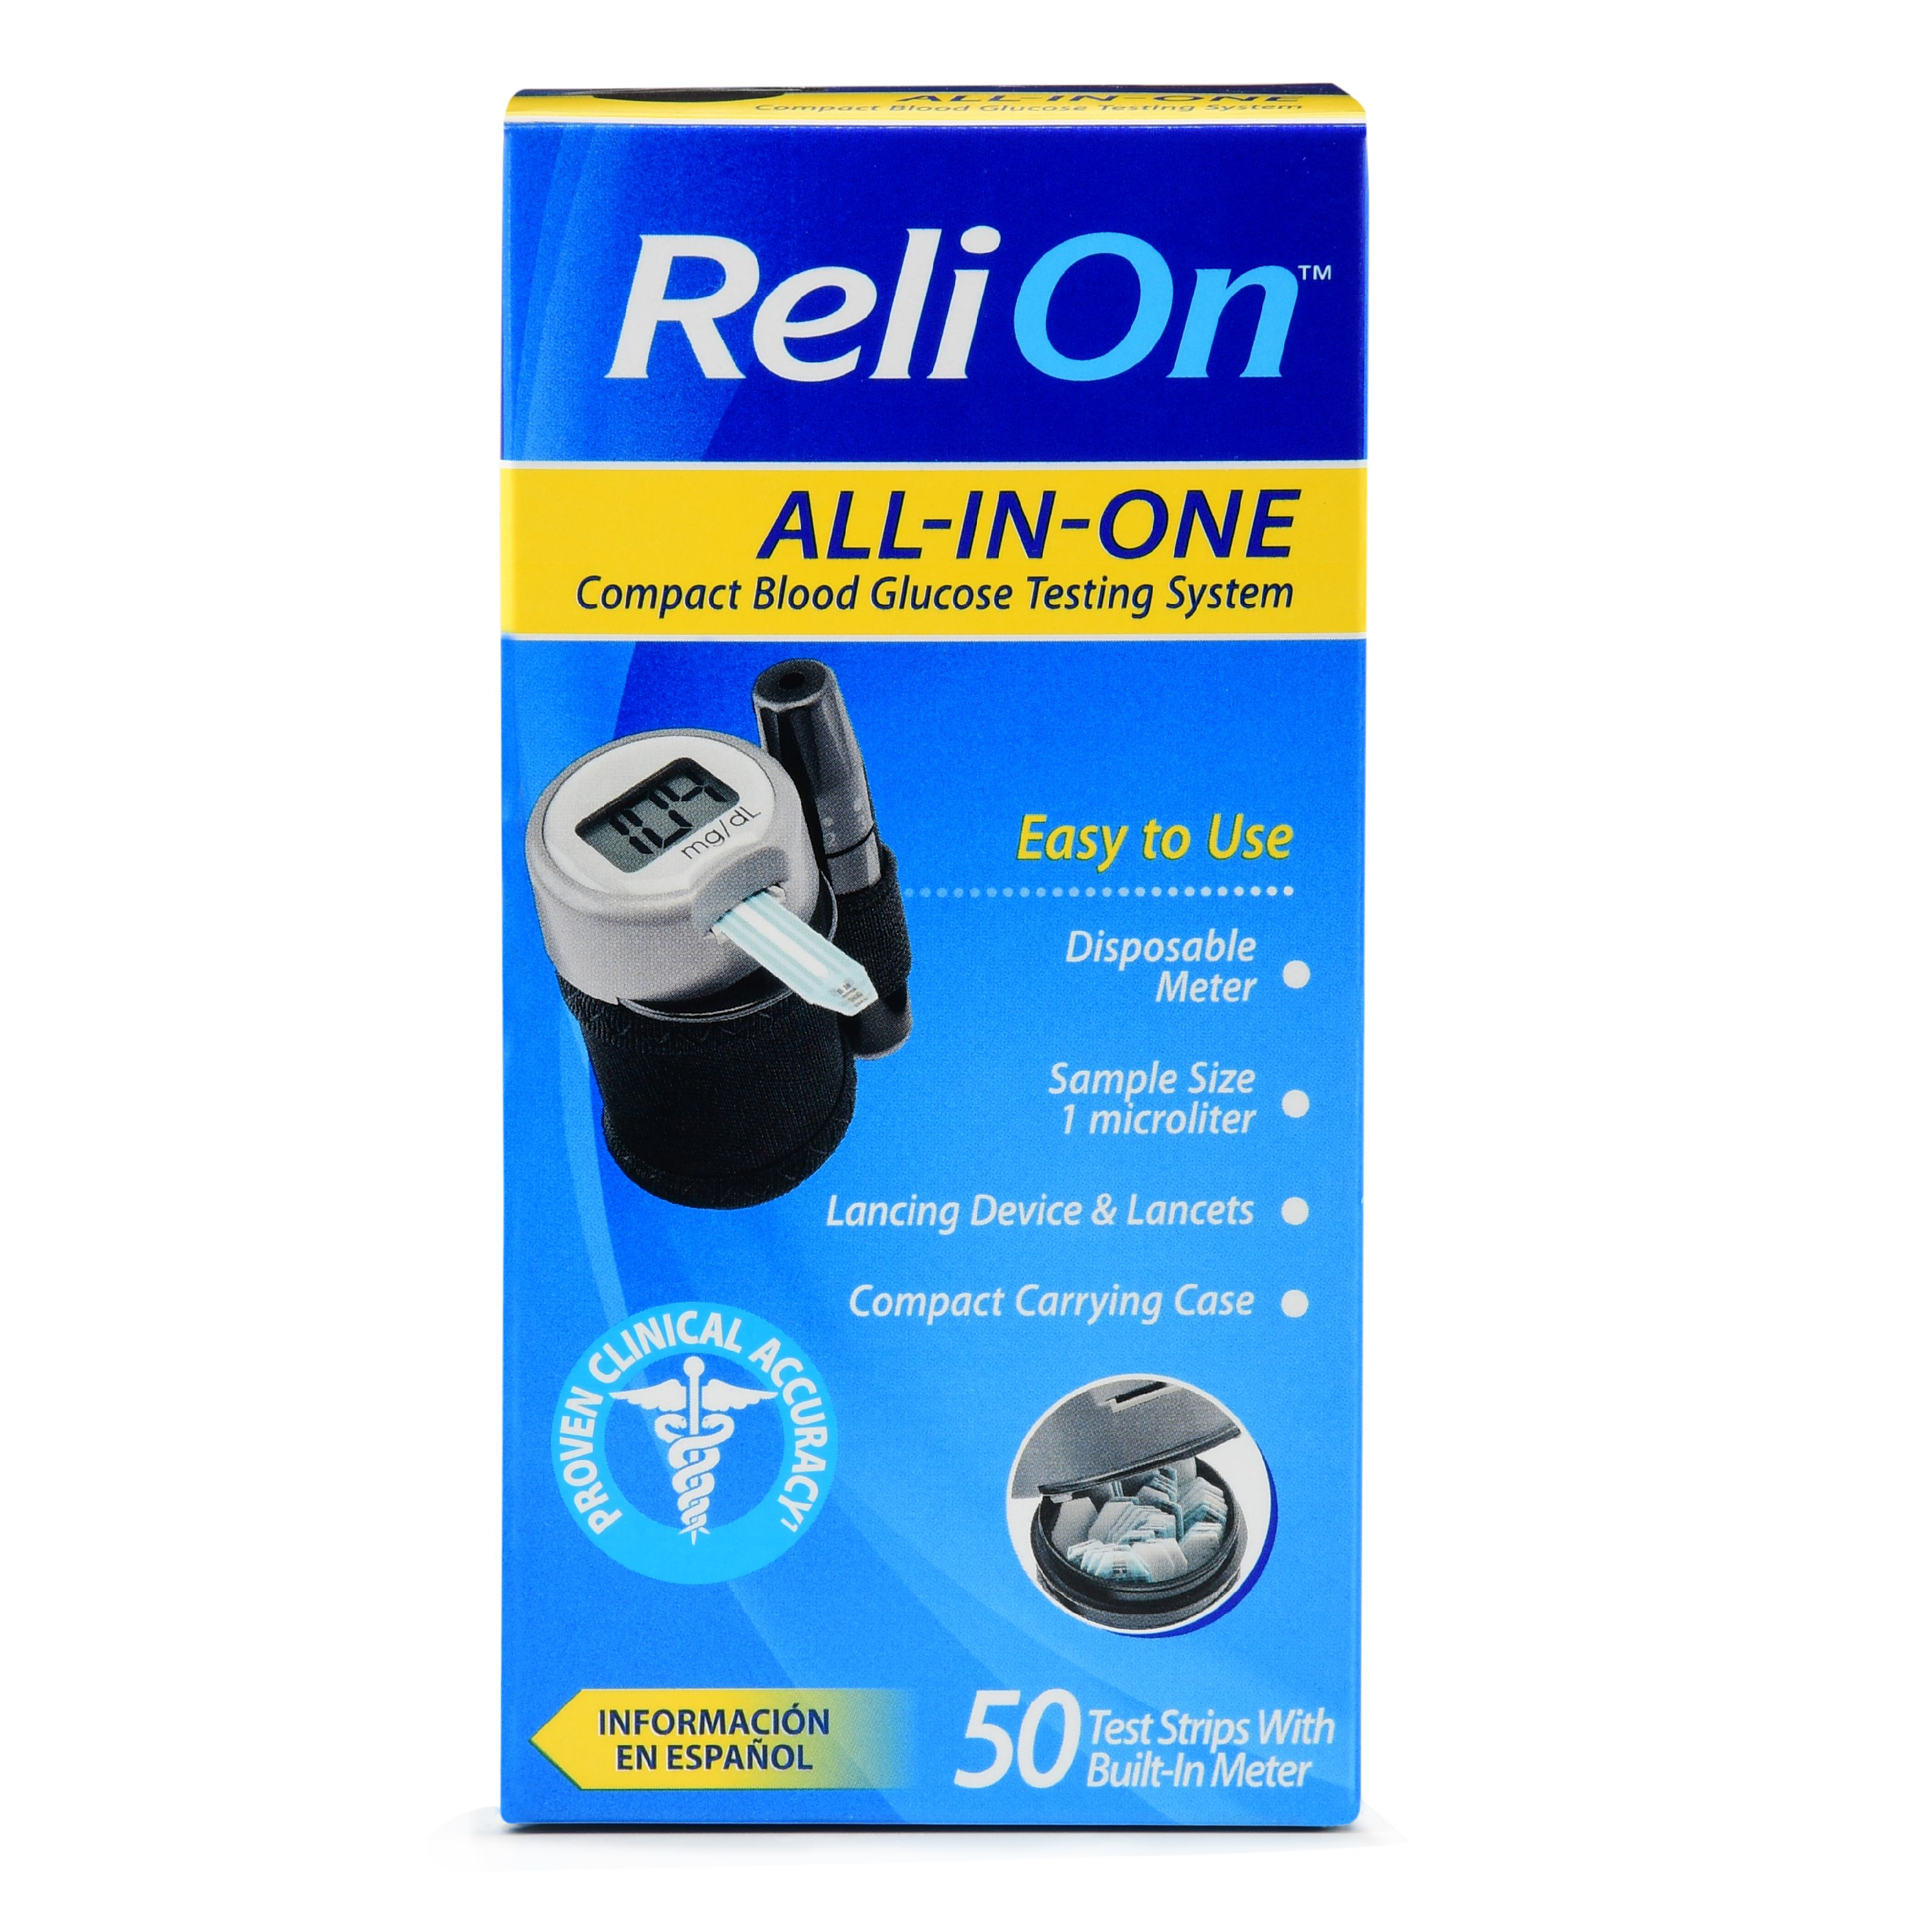 ReliOn All-In-One Compact Blood Glucose Testing System